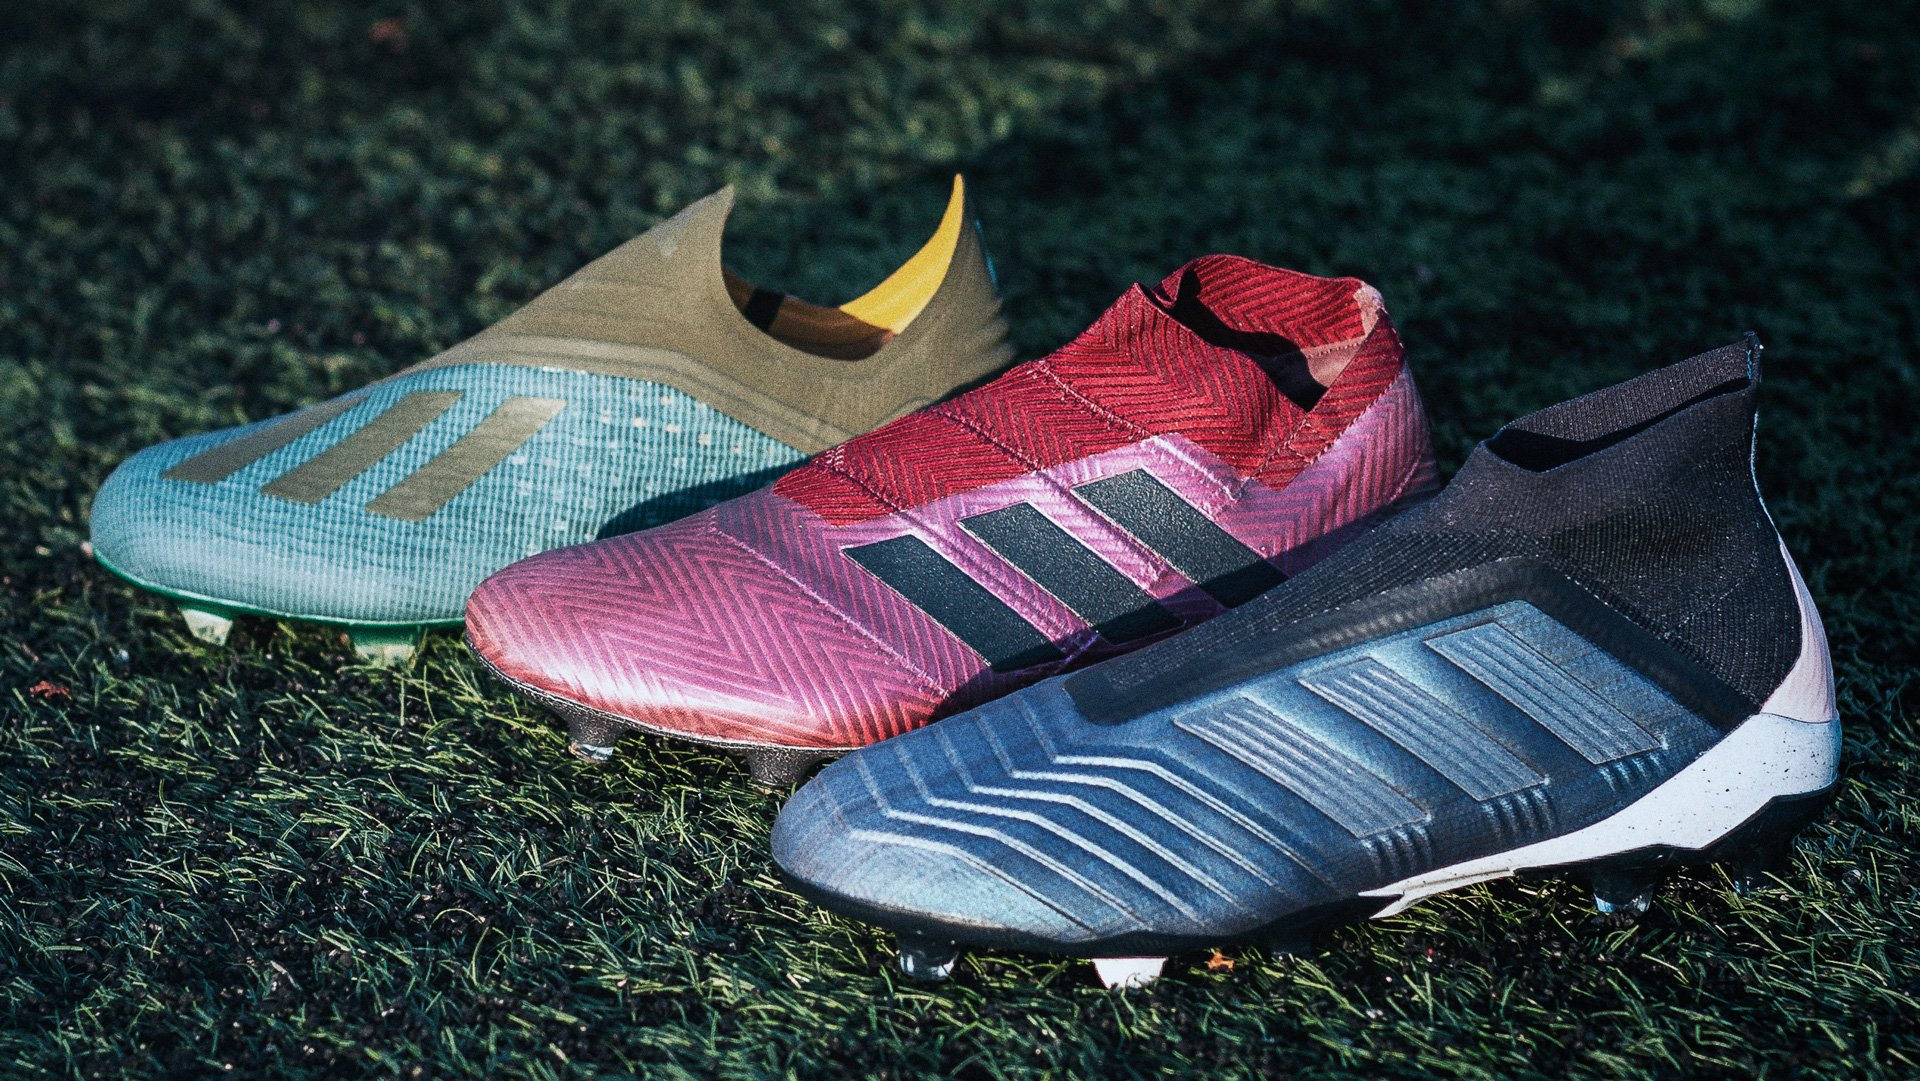 Conectado lazo cuchara  adidas Cold Mode | Read more about the new pack